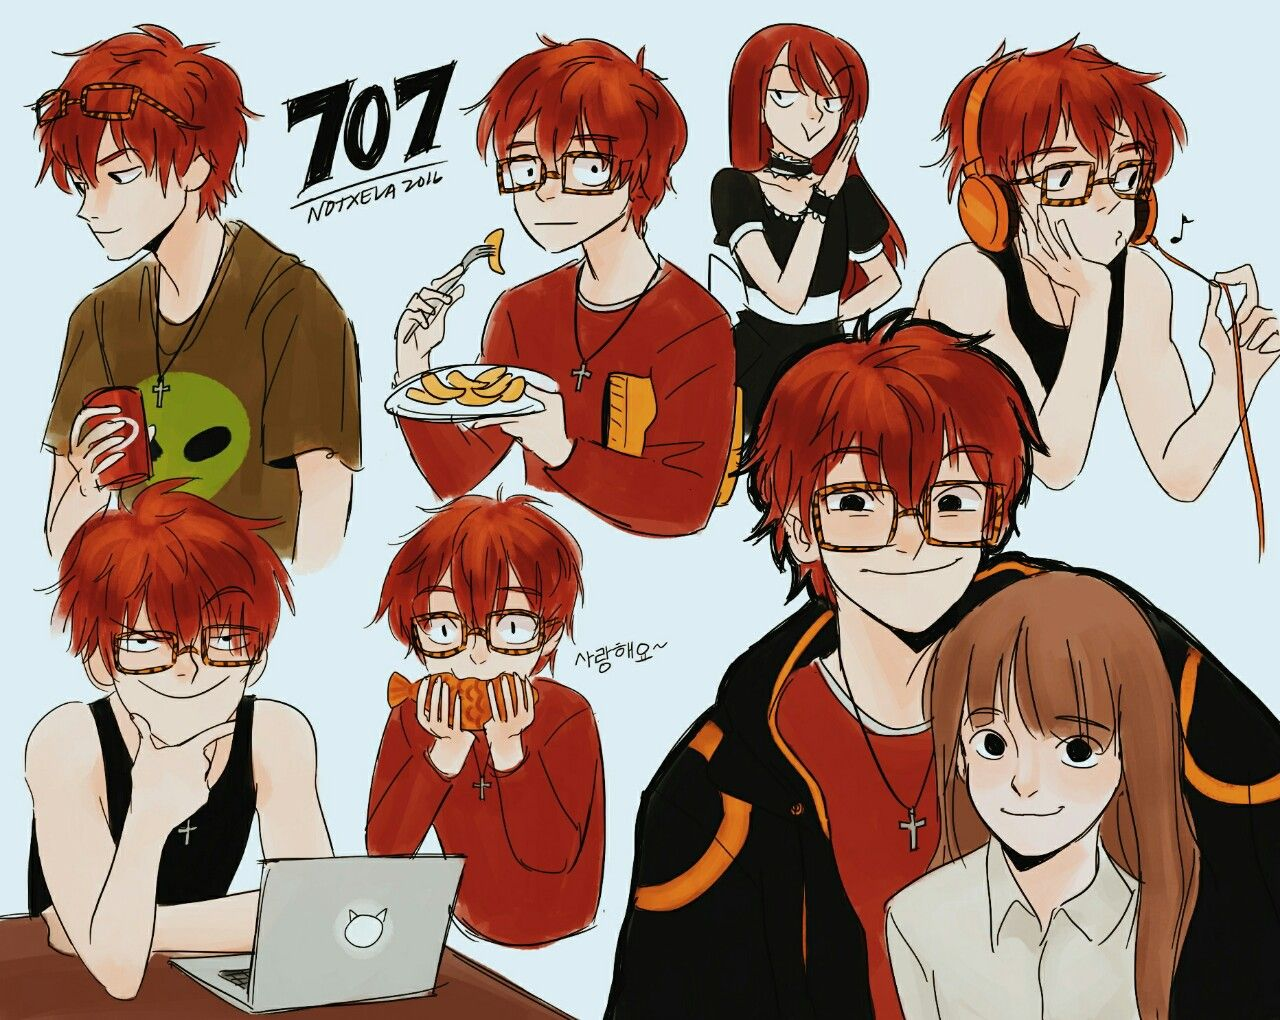 Defender of Justice, 707! (Honestly, can he get any less cuter